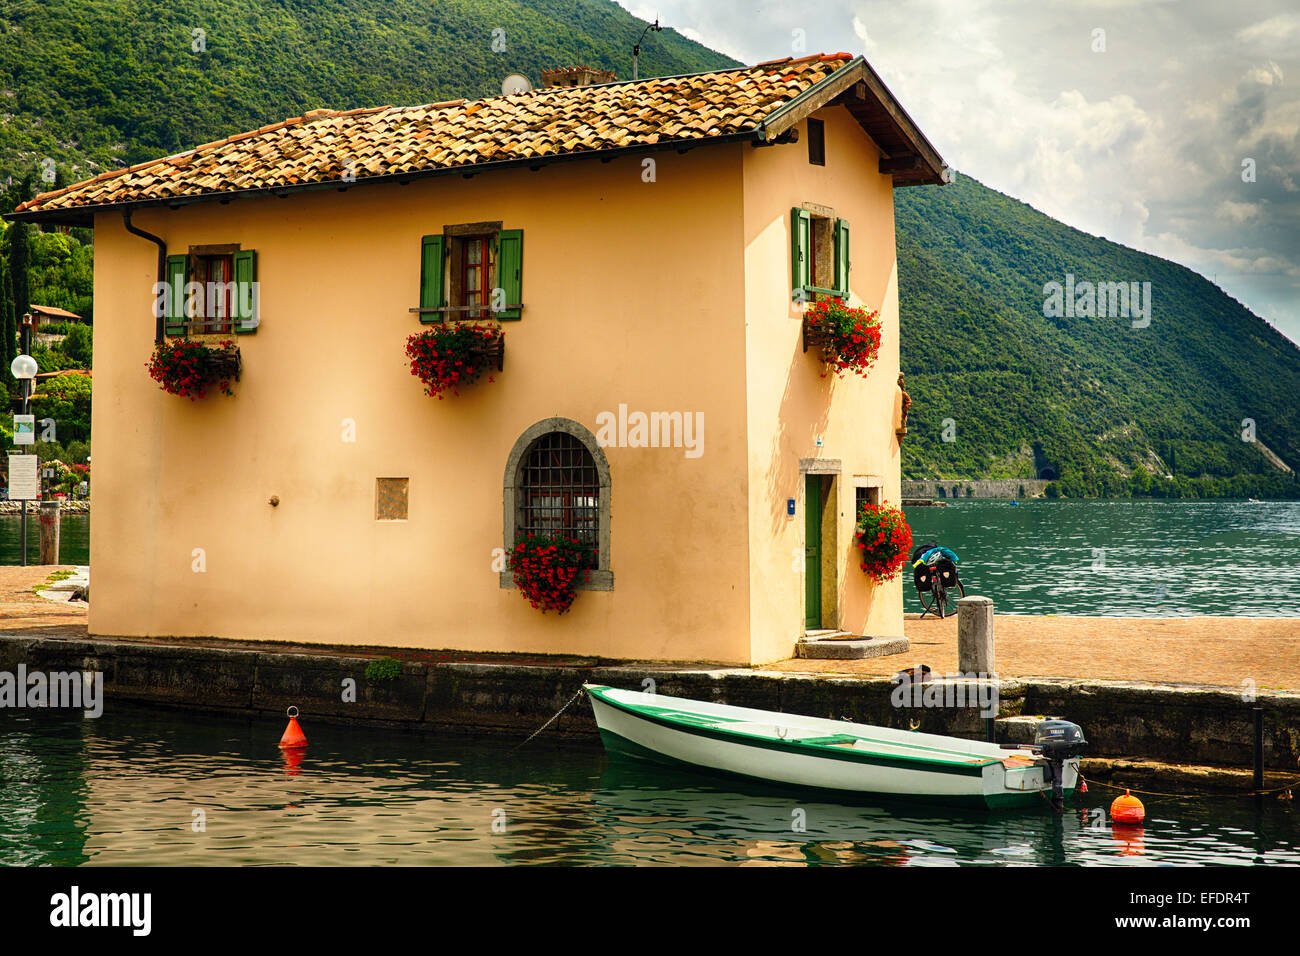 Low Angle View of a Small House on a Jetty, Riva Del Garda, Trentino, Italy - Stock Image